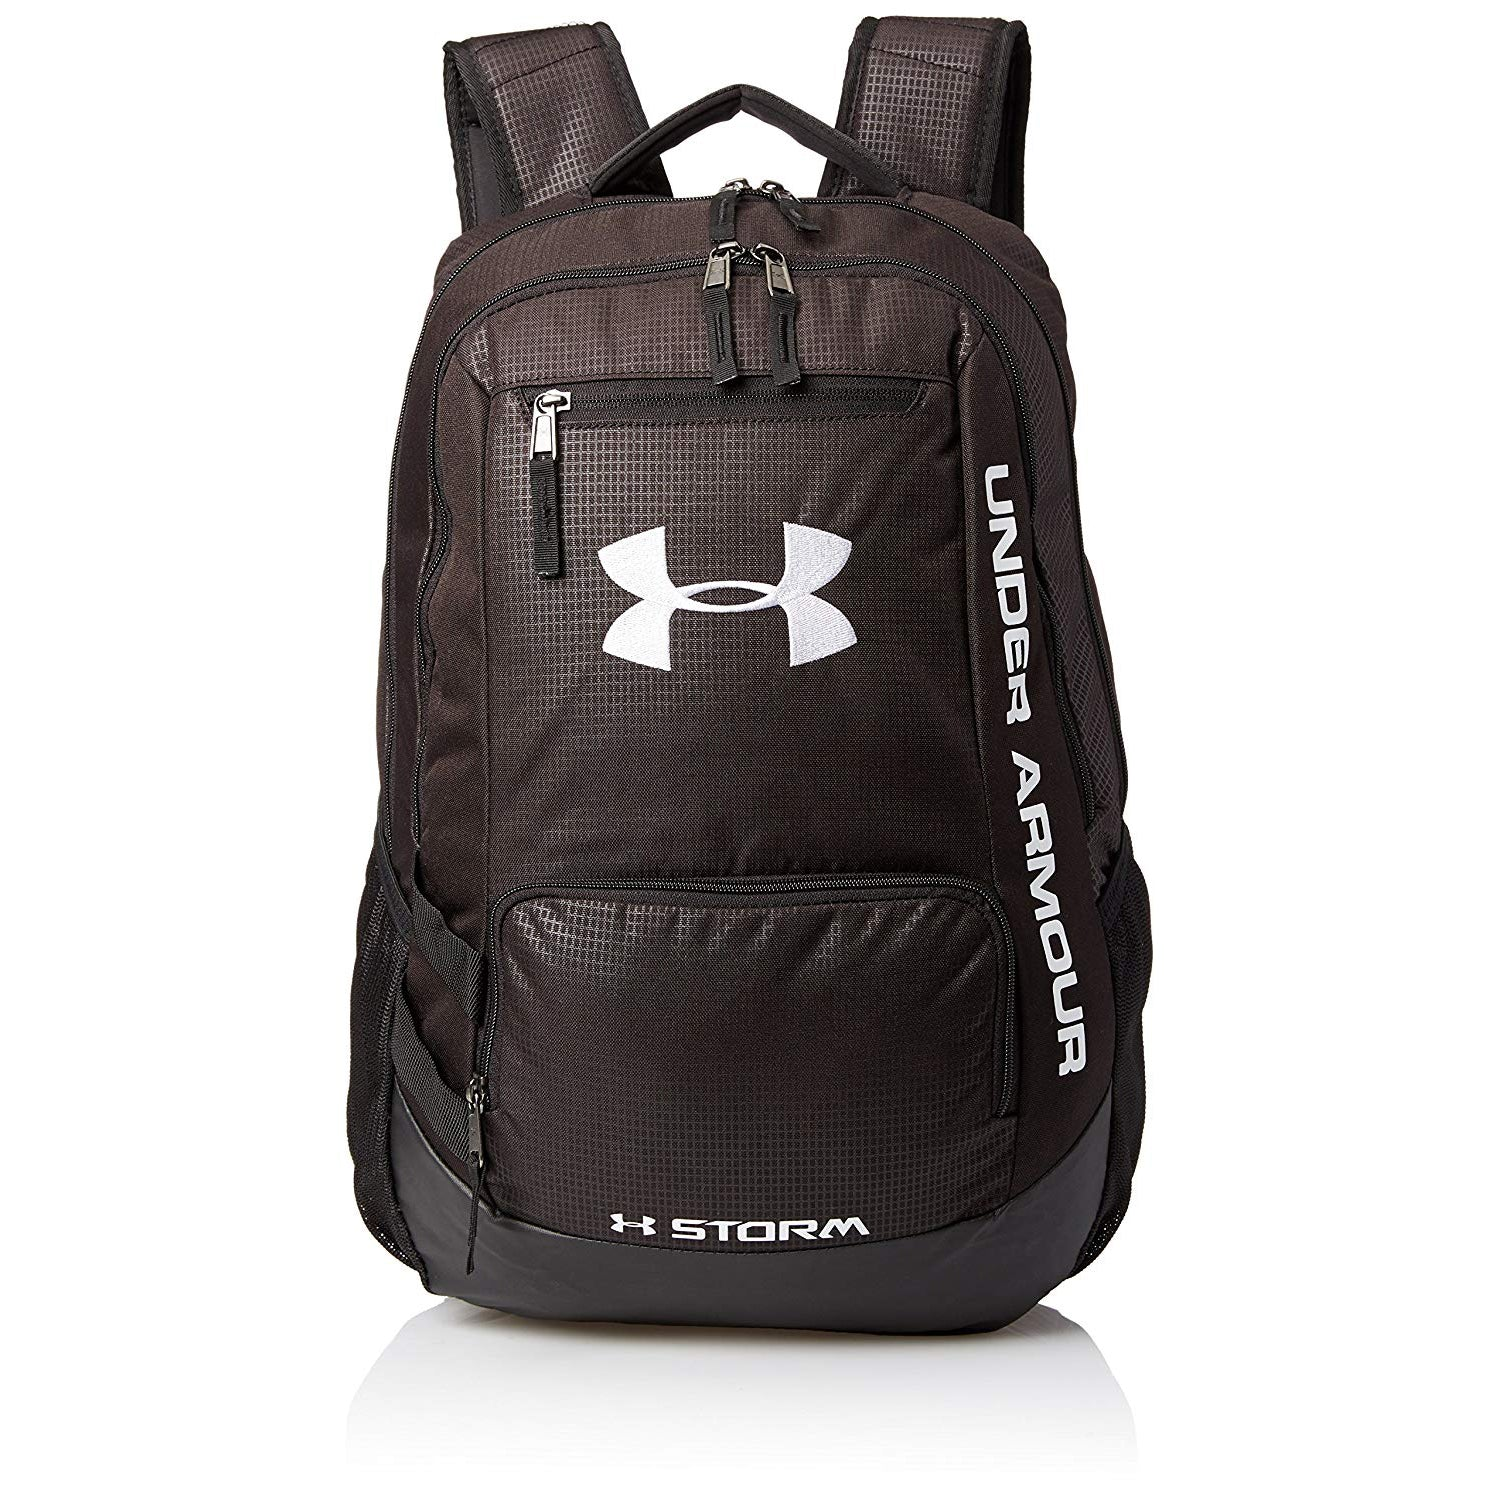 36820f972c9b Under Armour Storm Hustle II Backpack - HYDRA Tactical